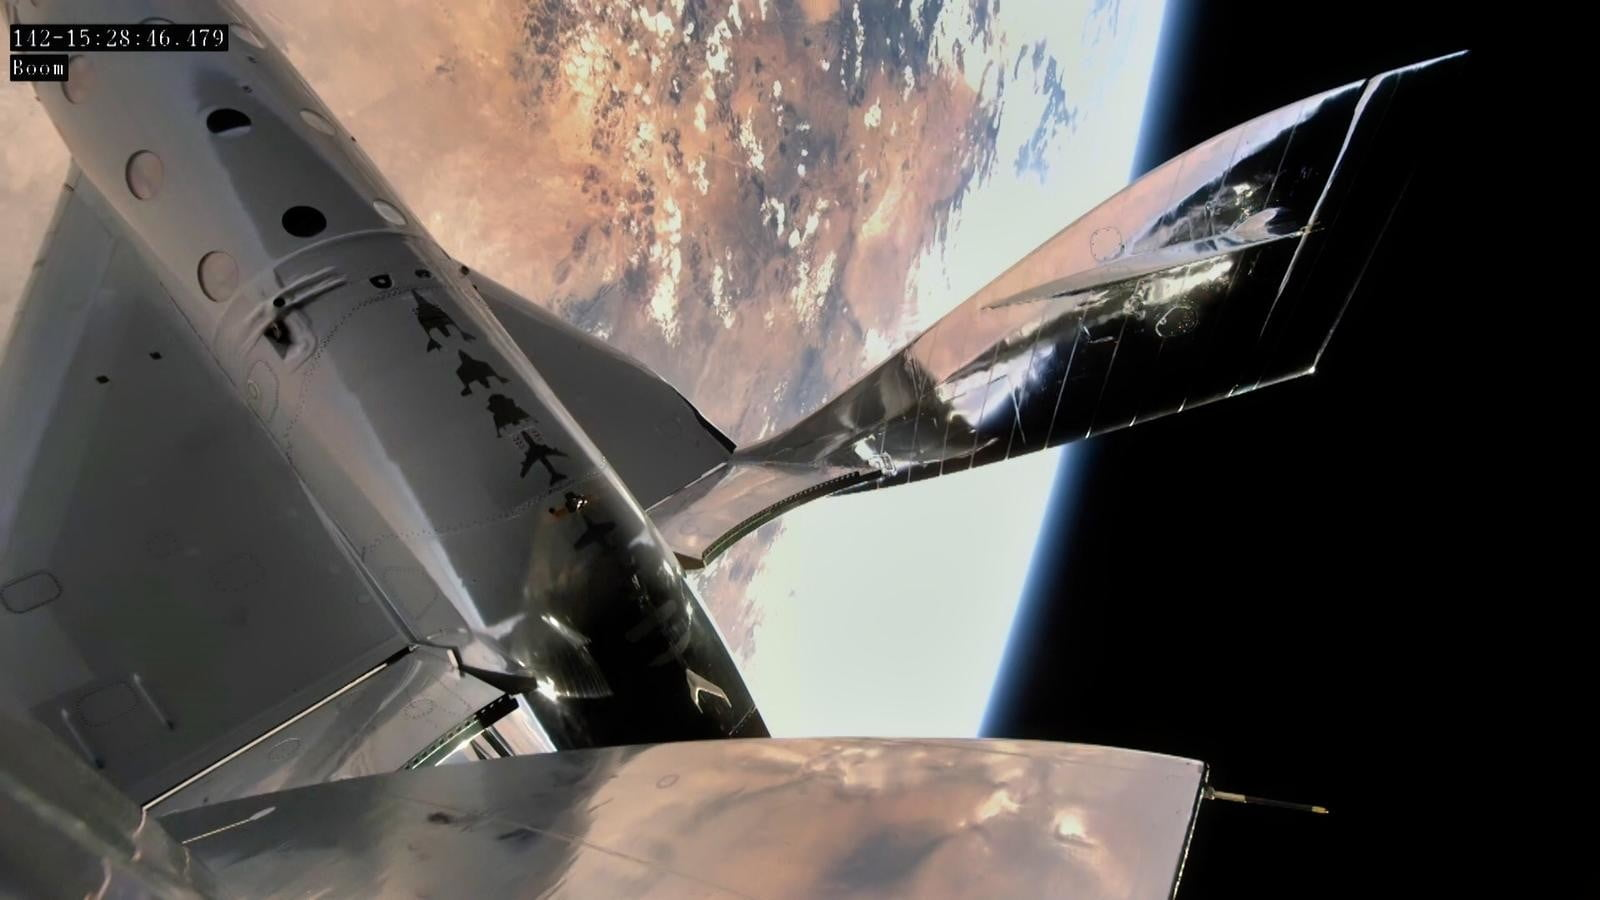 The Virgin Galactic Spaceplane makes it the frontier of space